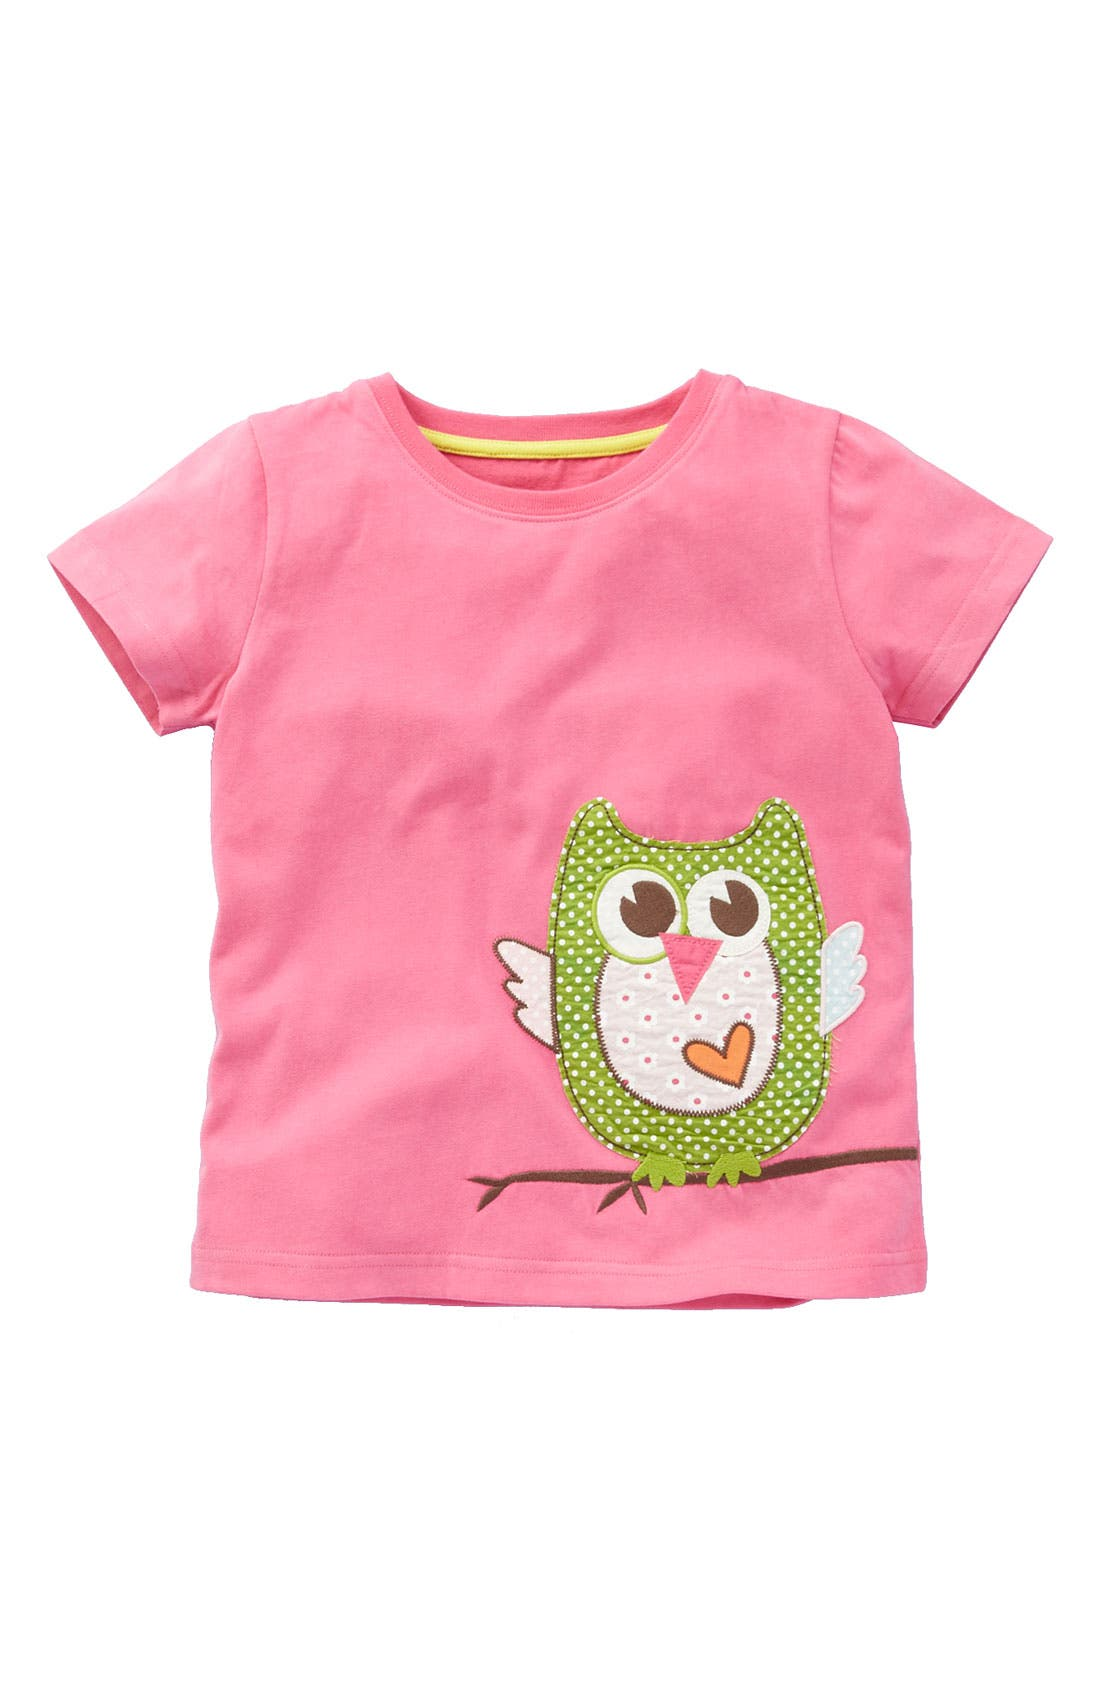 Main Image - Mini Boden 'Animal Patchwork' Tee (Toddler)